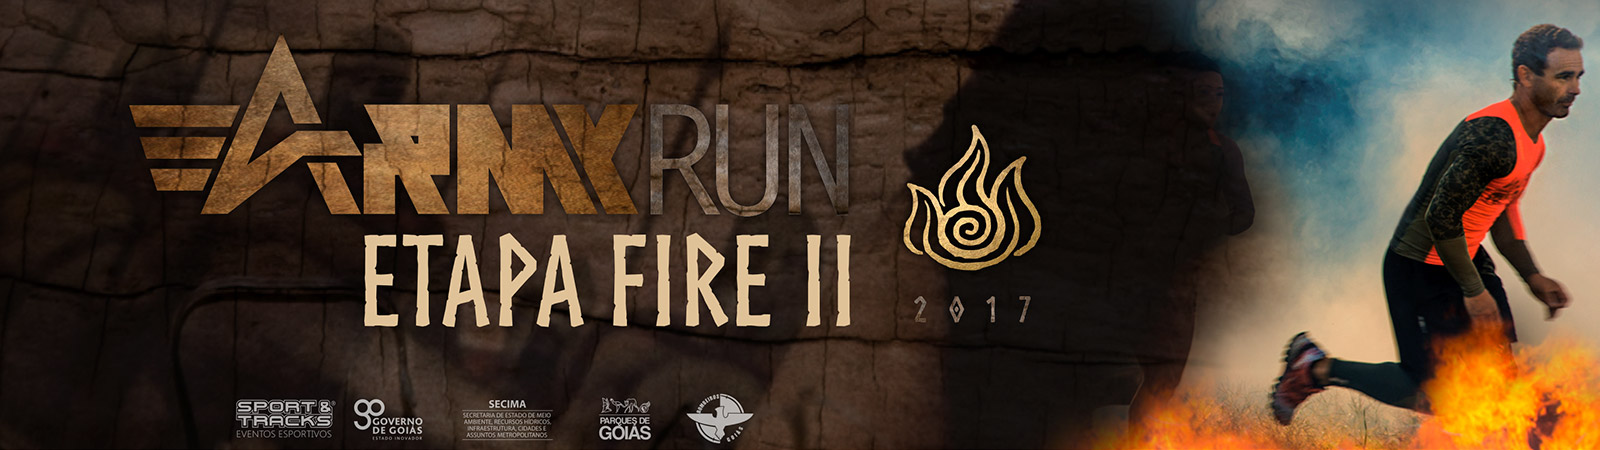 ARMY RUN - ETAPA FIRE II